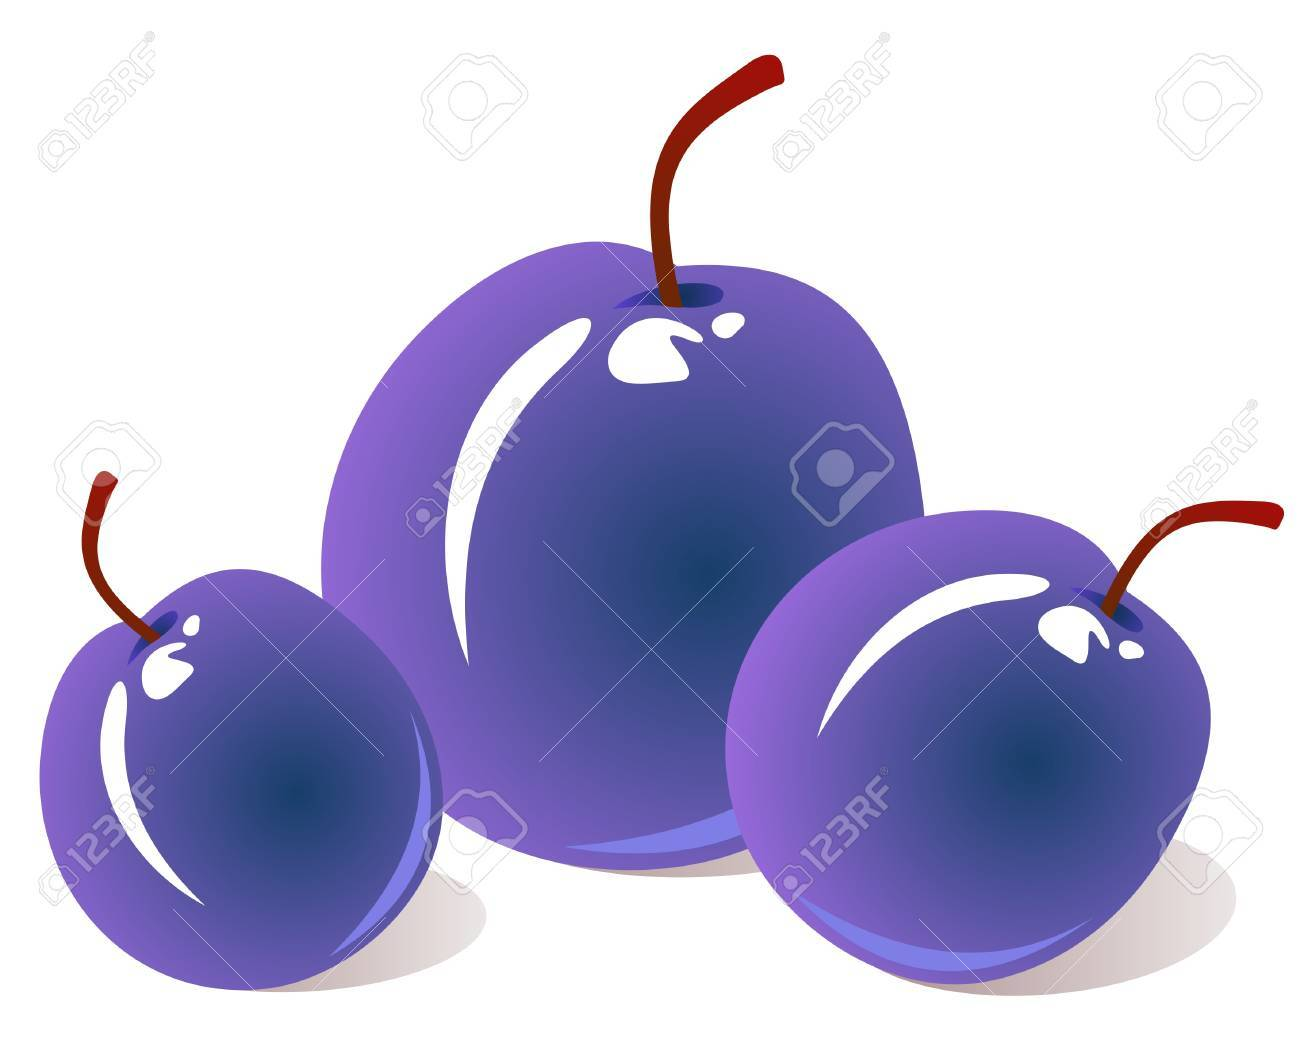 Stylized tasty plums isolated on a white background. Stock Vector - 4822333